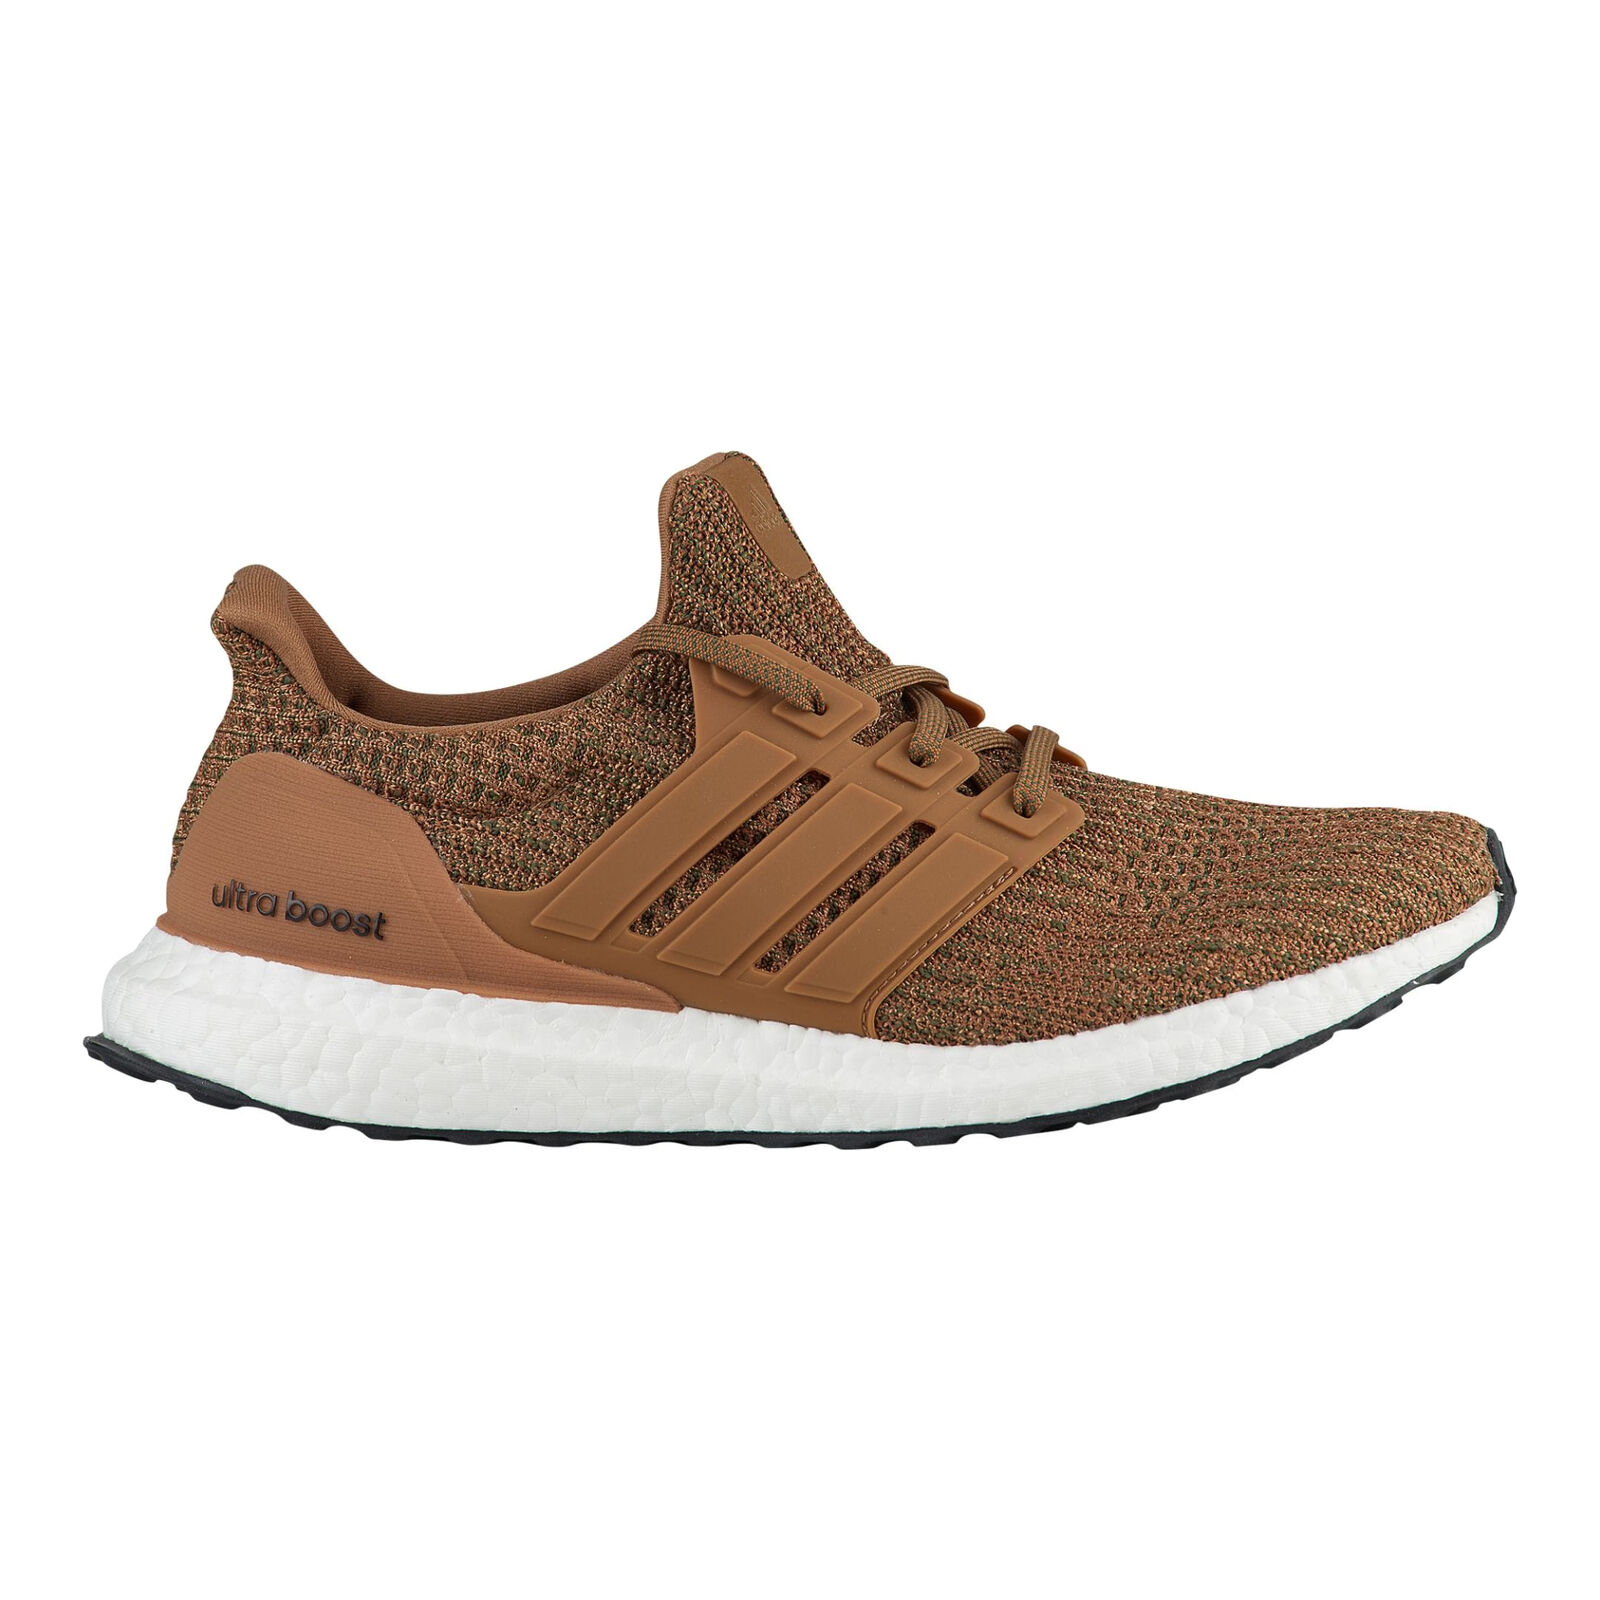 Adidas Ultra Boost Mens CM8118 Raw Desert Primeknit Running shoes Size 10.5